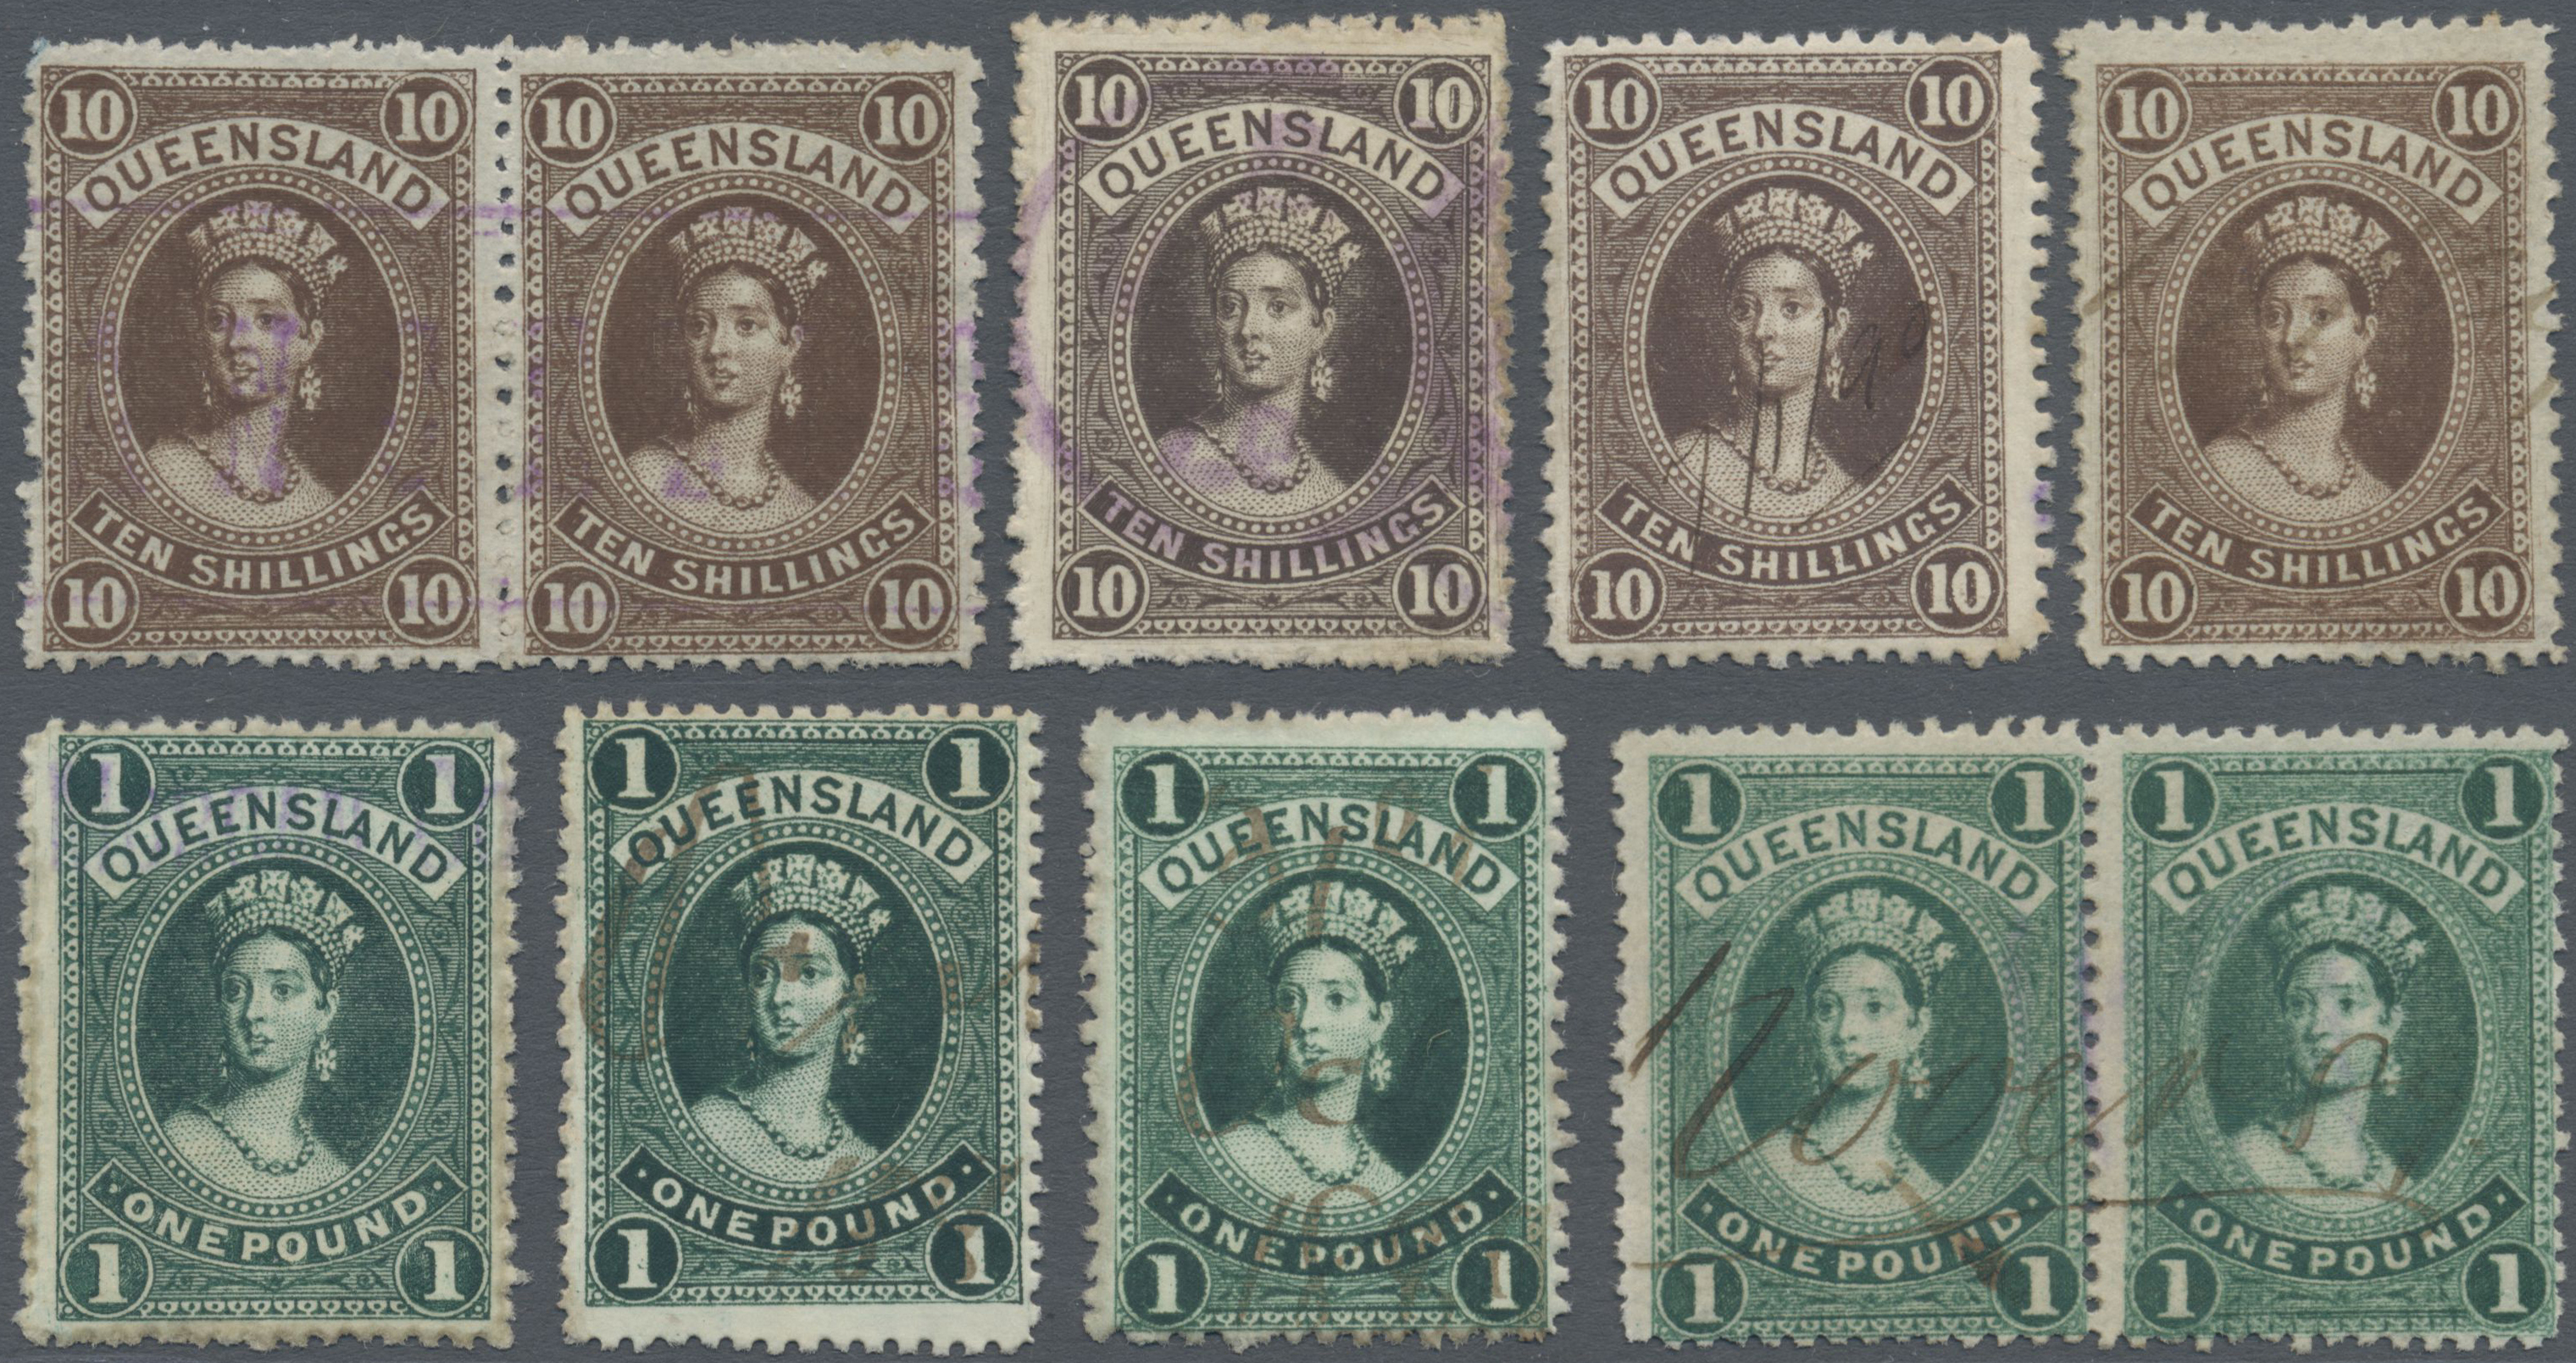 Lot 34535 - queensland  -  Auktionshaus Christoph Gärtner GmbH & Co. KG Sale #44 Collections Germany